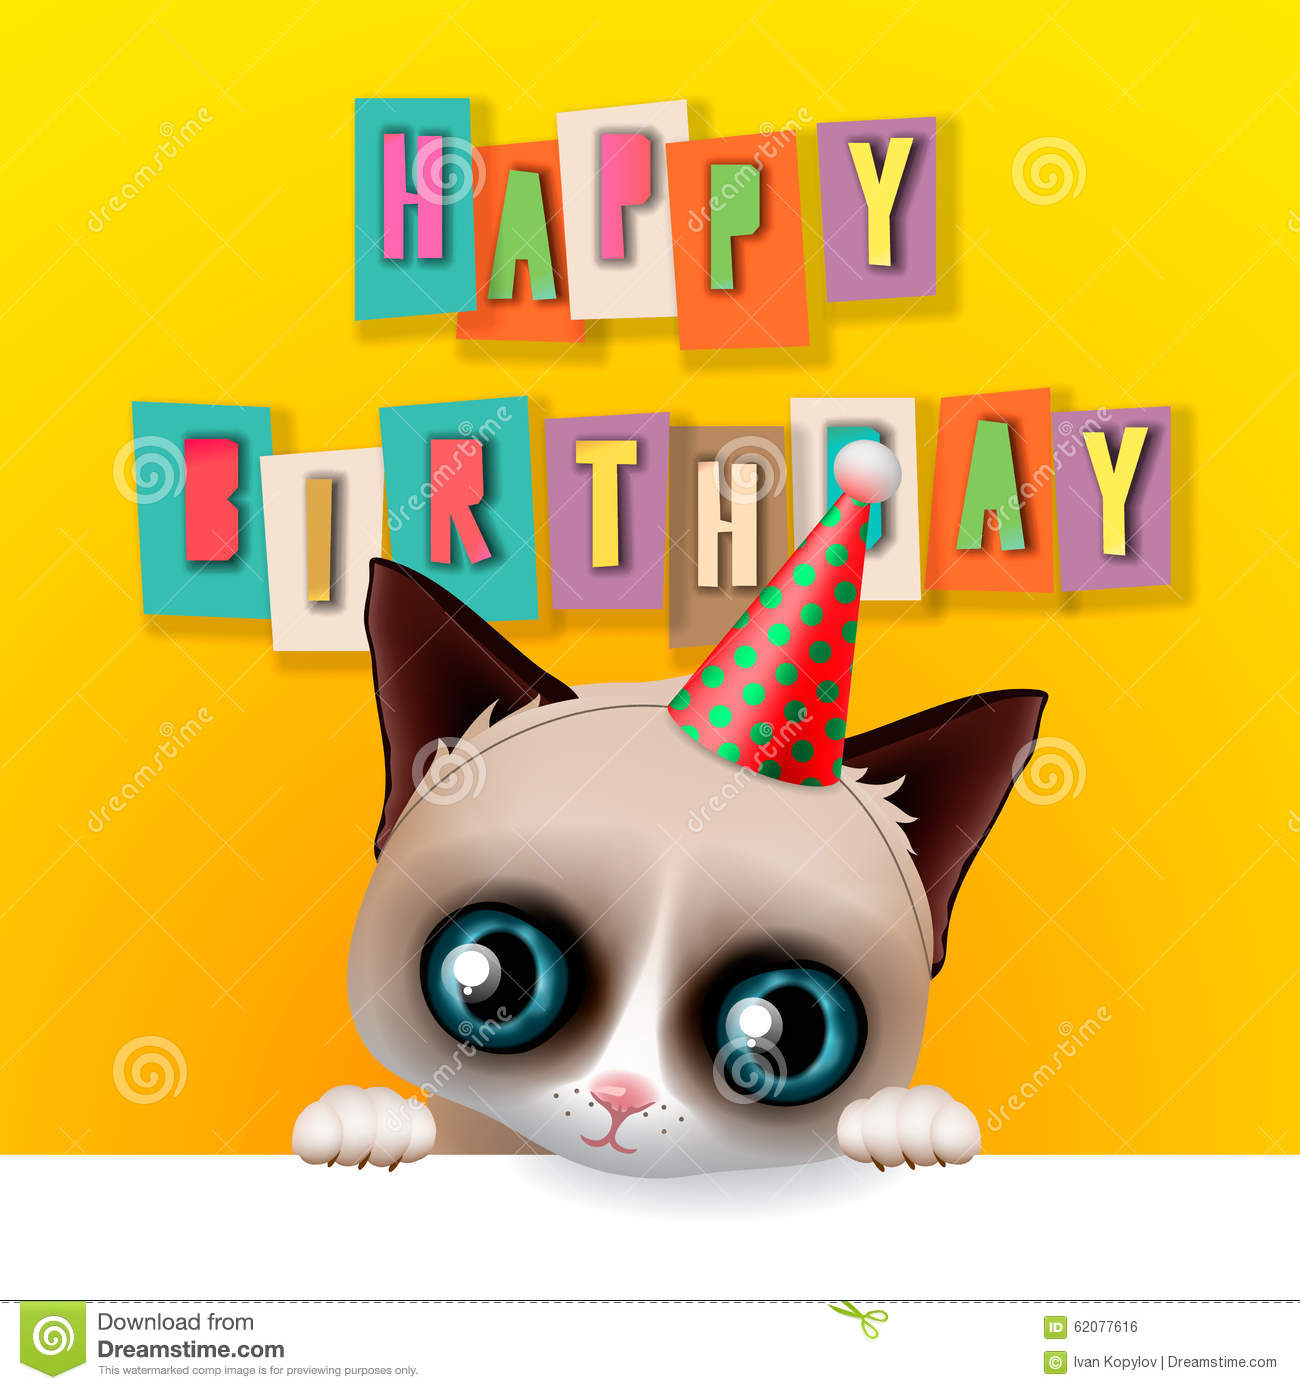 Cute Happy Birthday Card With Fun Grumpy Cat